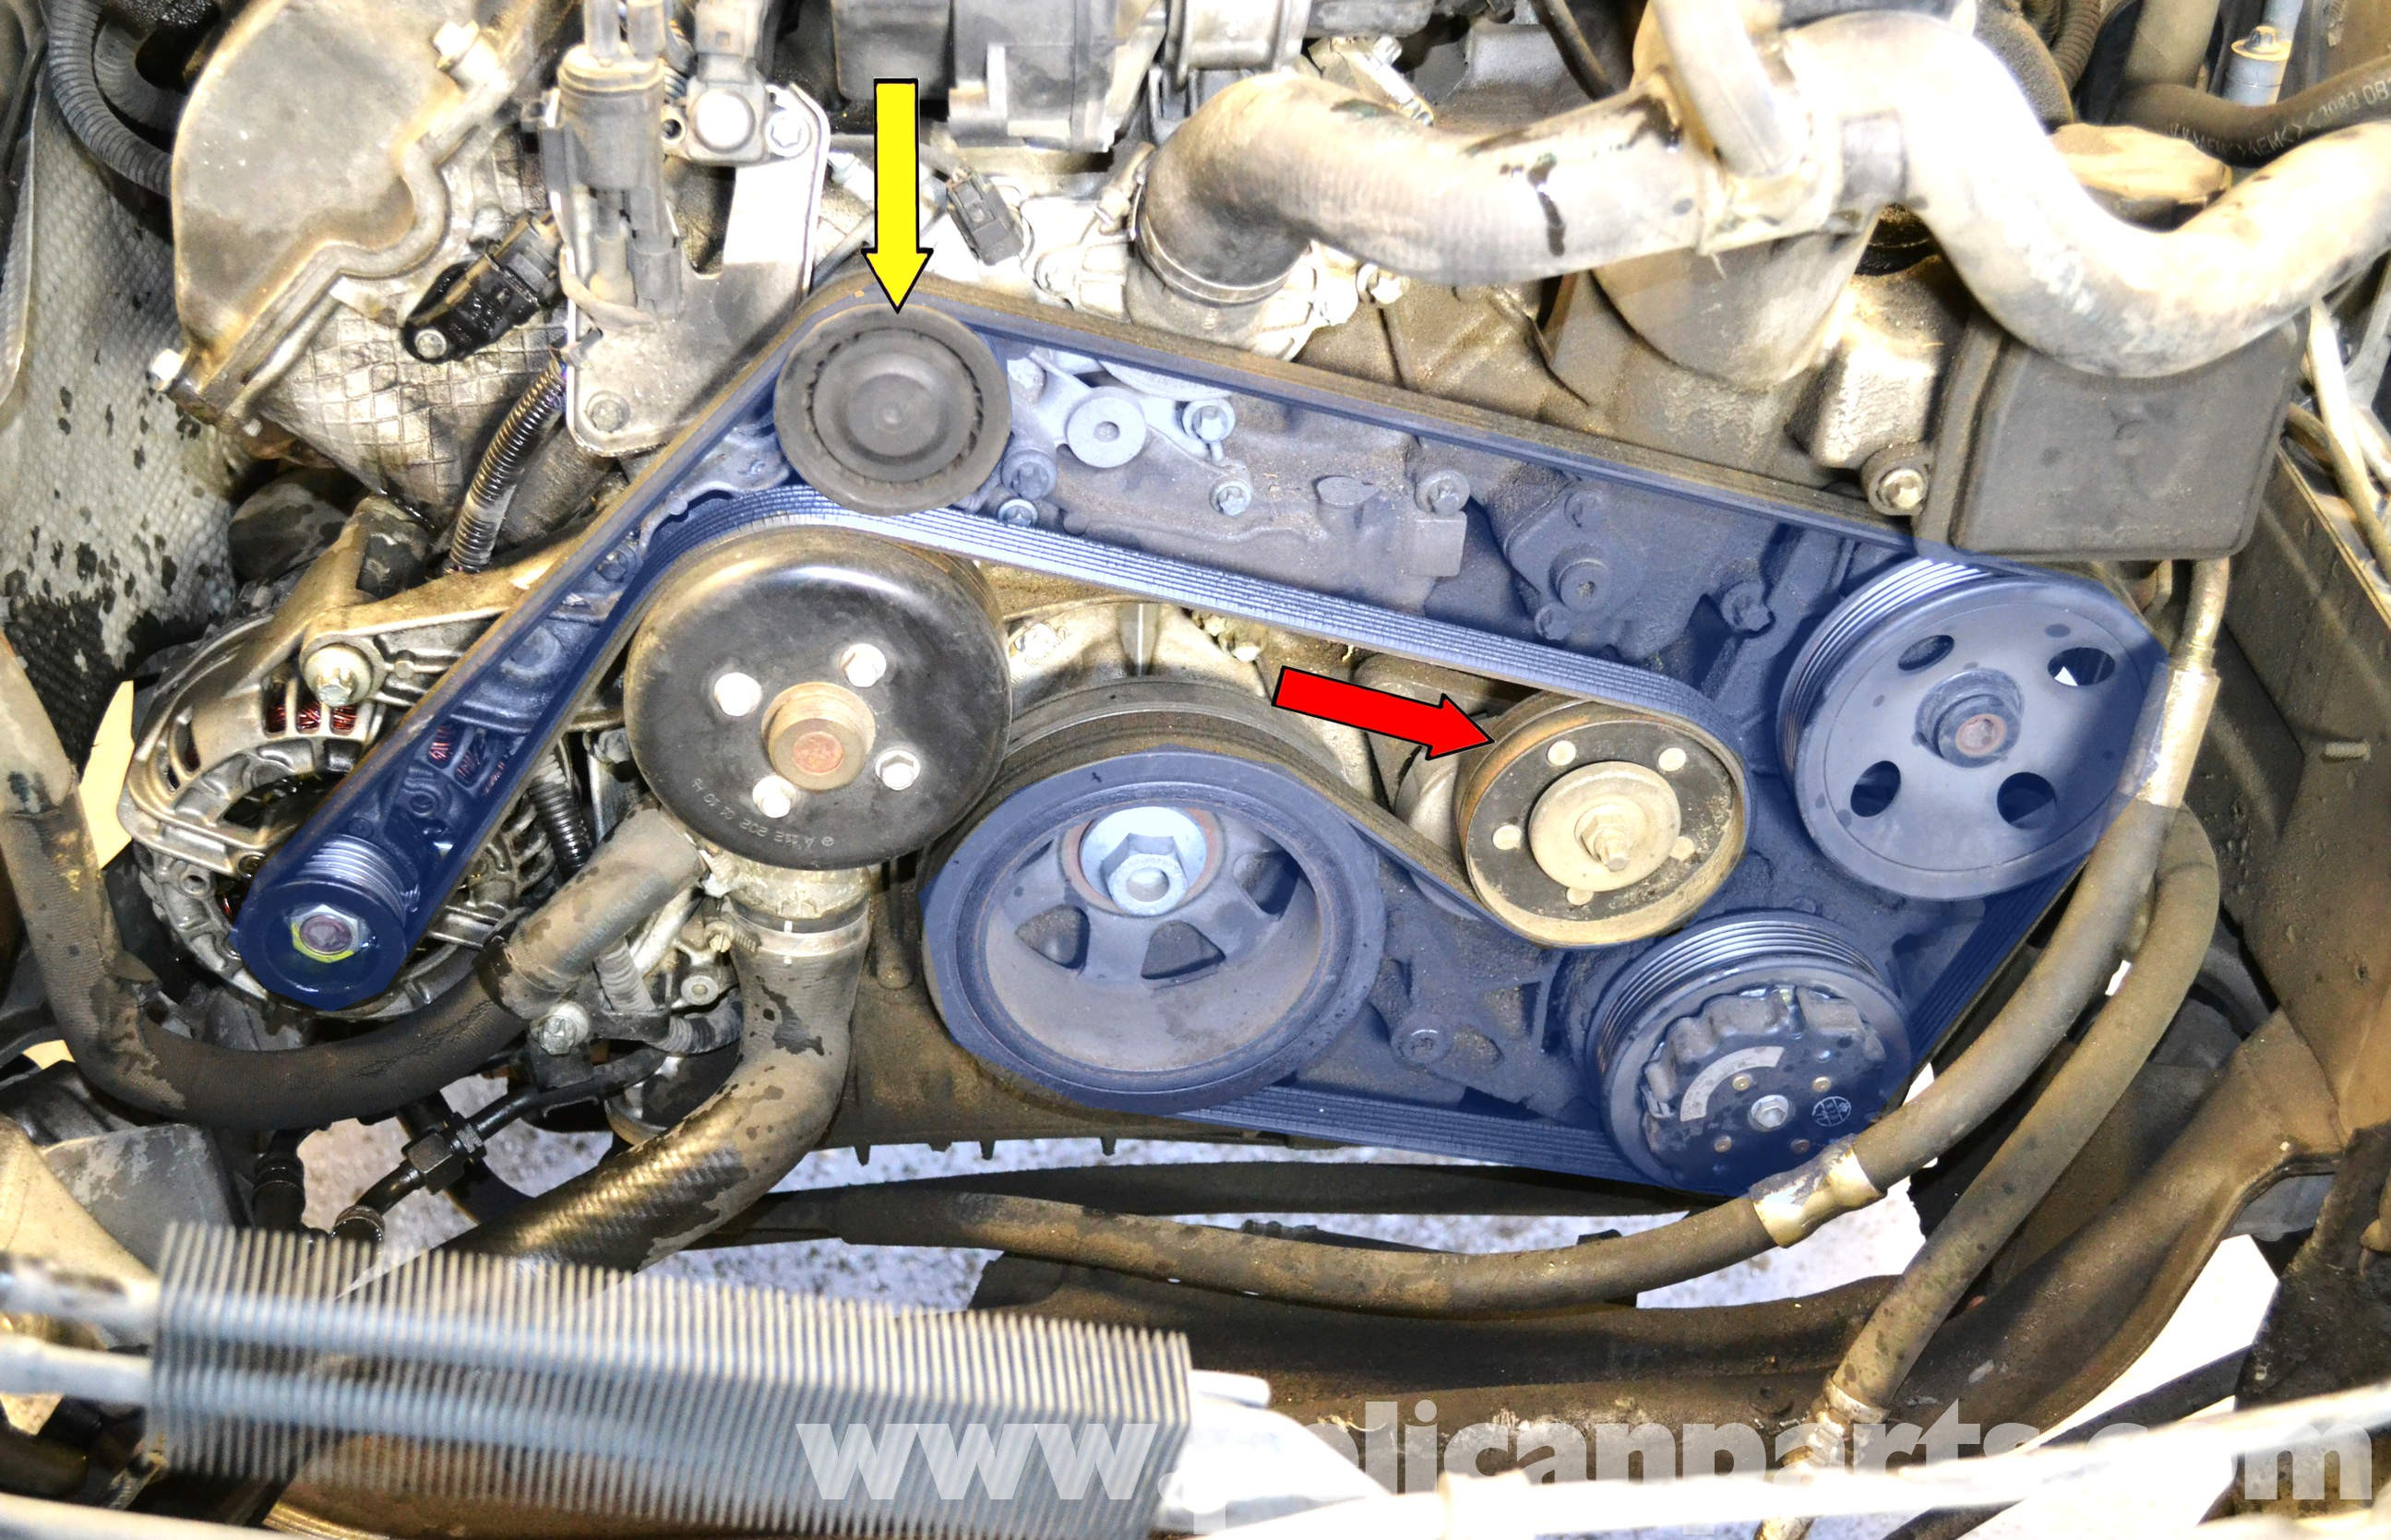 Mercedes S430 Engine Diagram Mercedes Benz W203 Water Pump Replacement 2001 2007 C230 C280 Of Mercedes S430 Engine Diagram